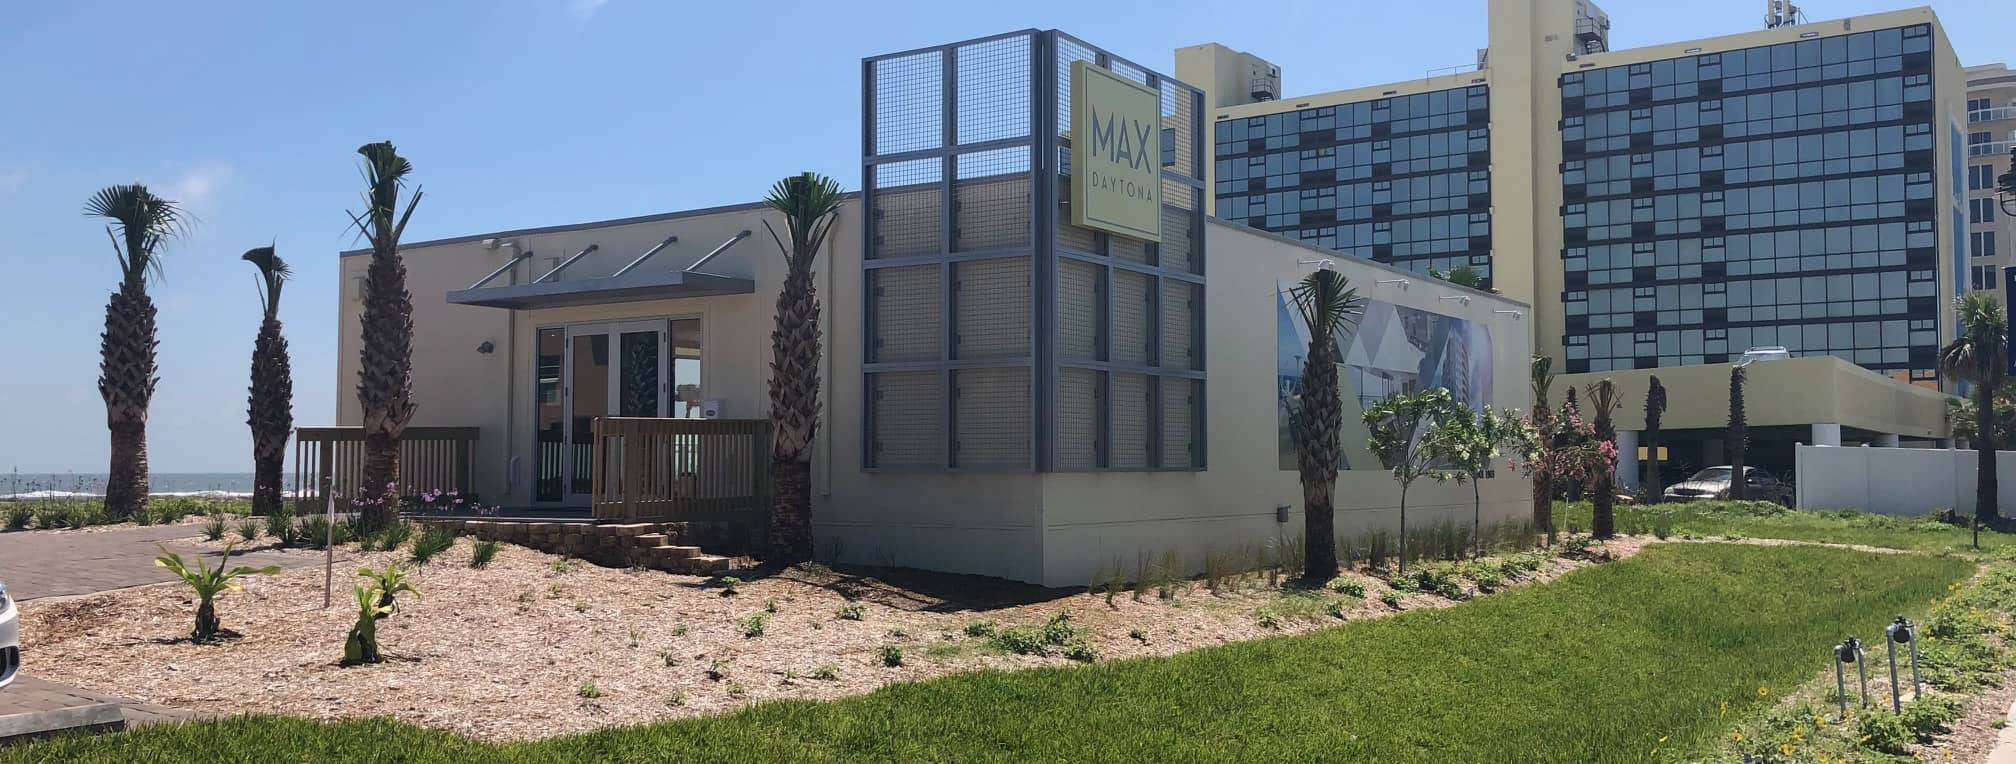 Call (813) 975-7256 for a Modular Sales Office Building. Max Daytona was custom built for a high end high rise condo project right on the beach in Daytona.